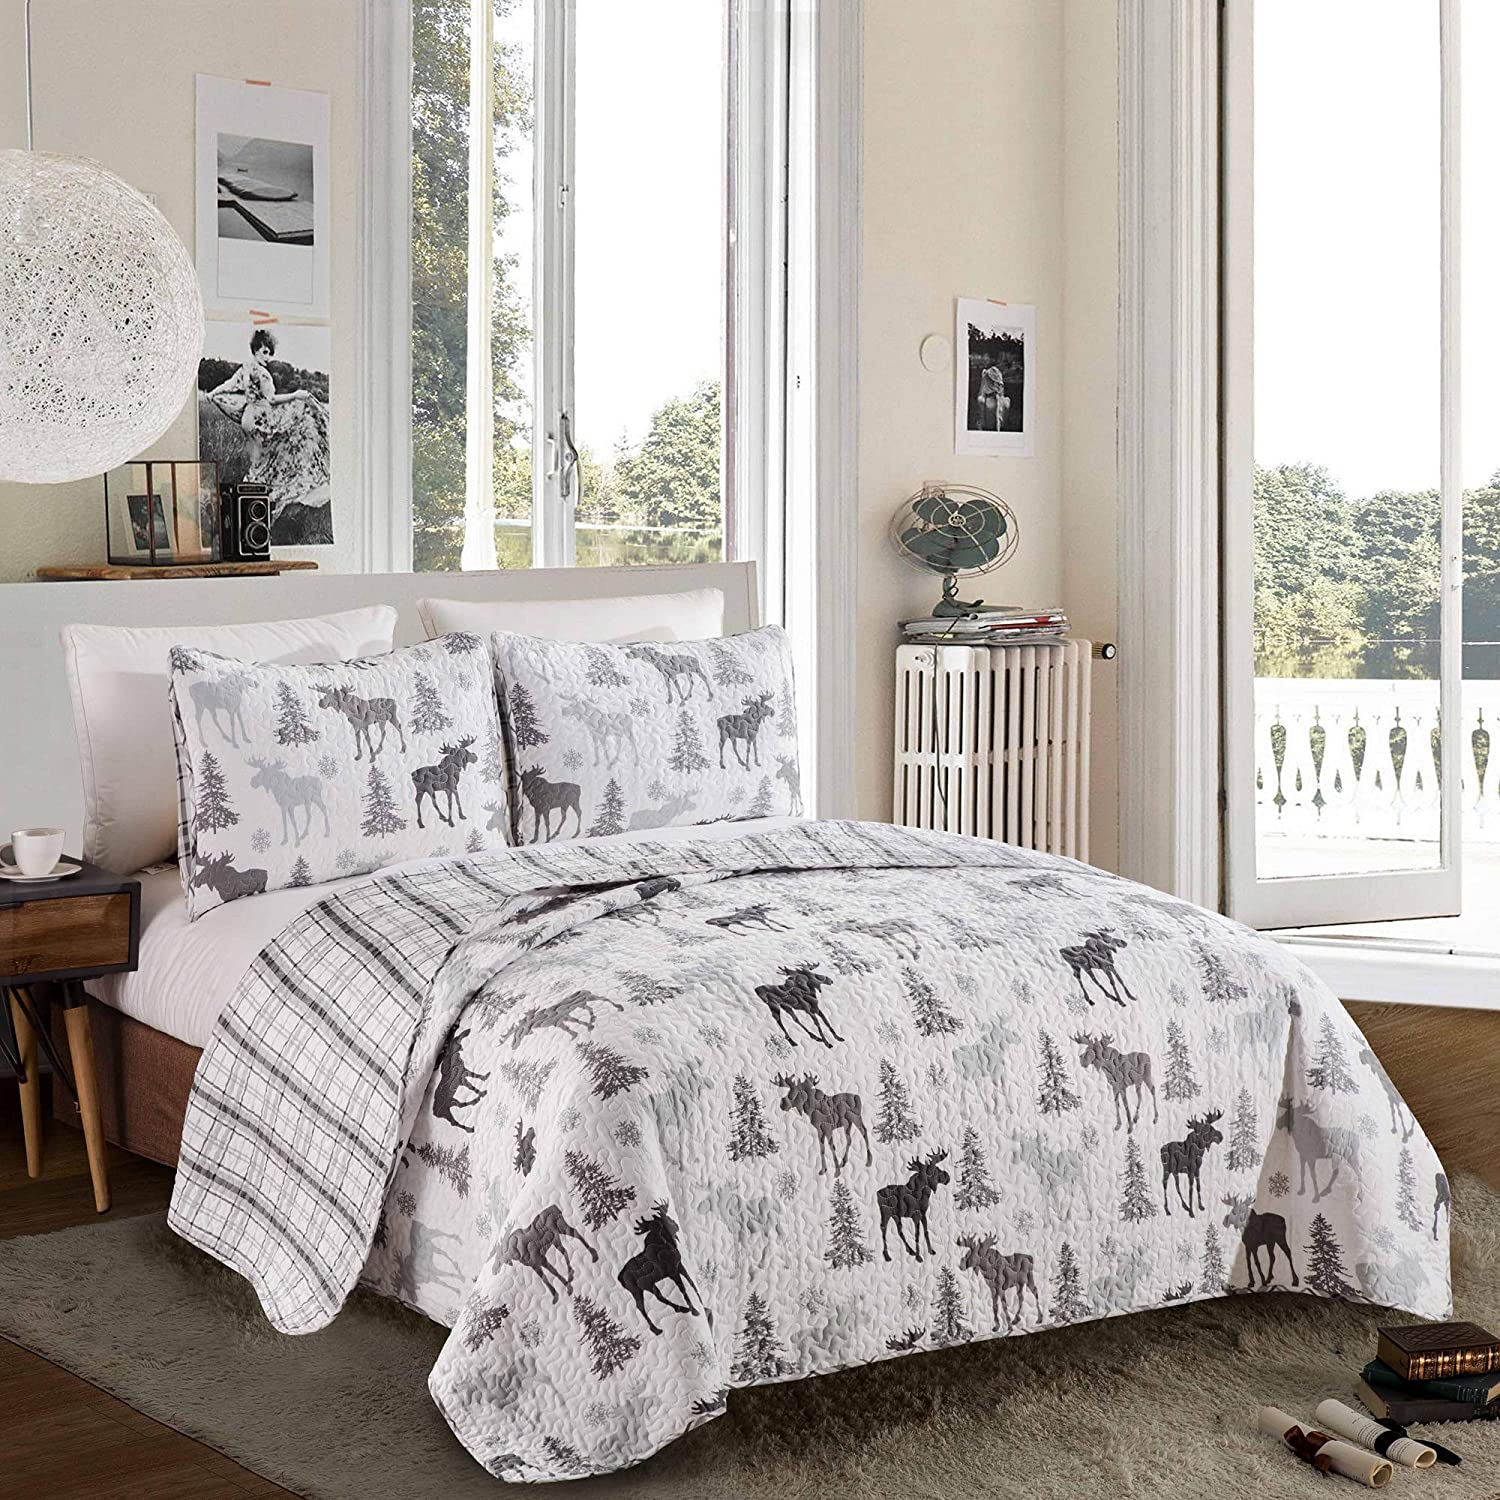 Rustic Quilt Coverlet Bed Set. Wilderness Collection (Moose - Grey)